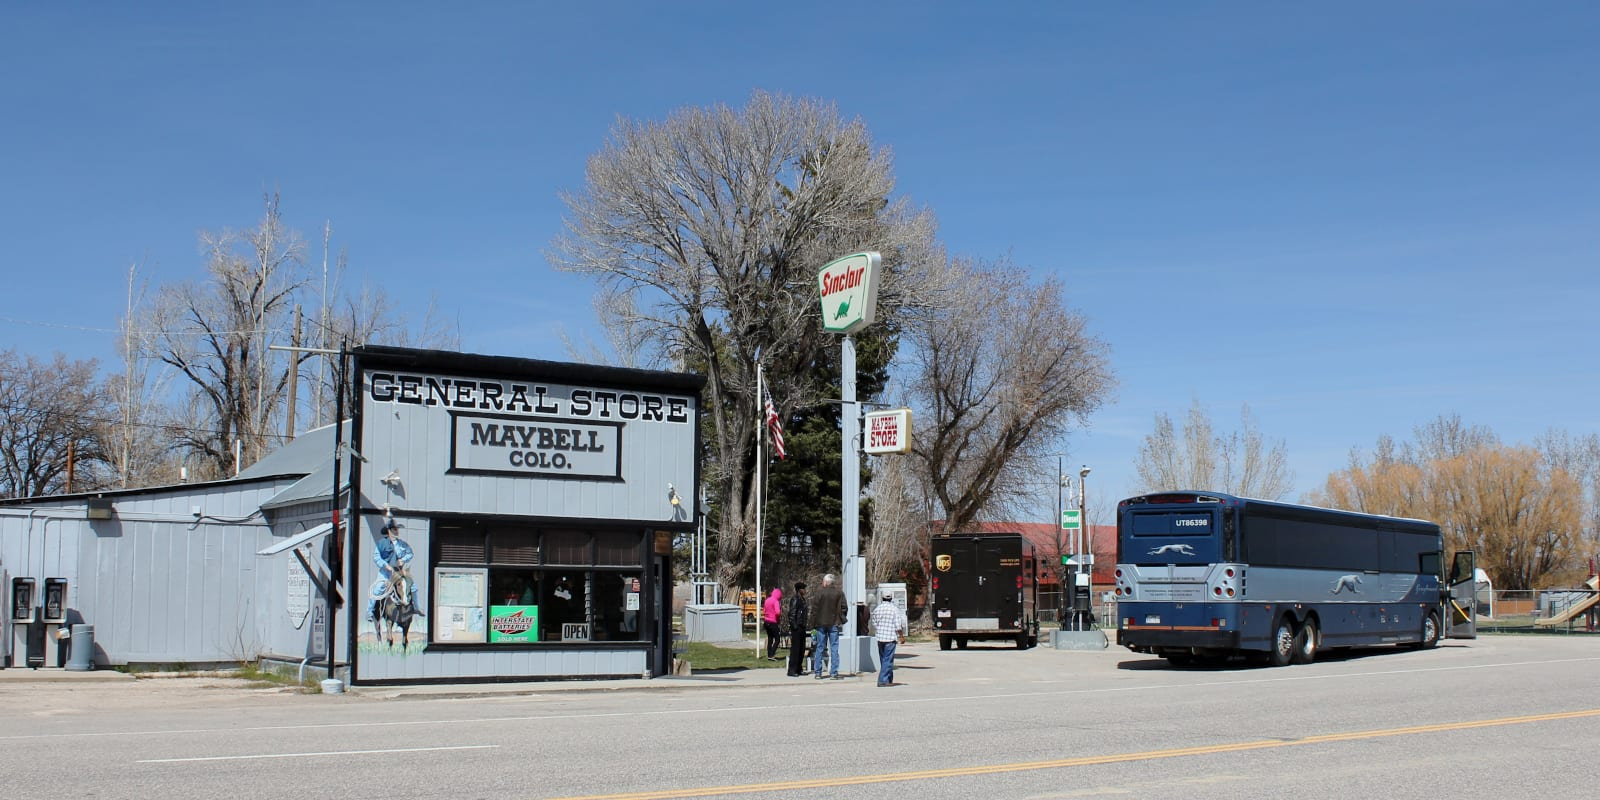 Maybell Colorado General Store